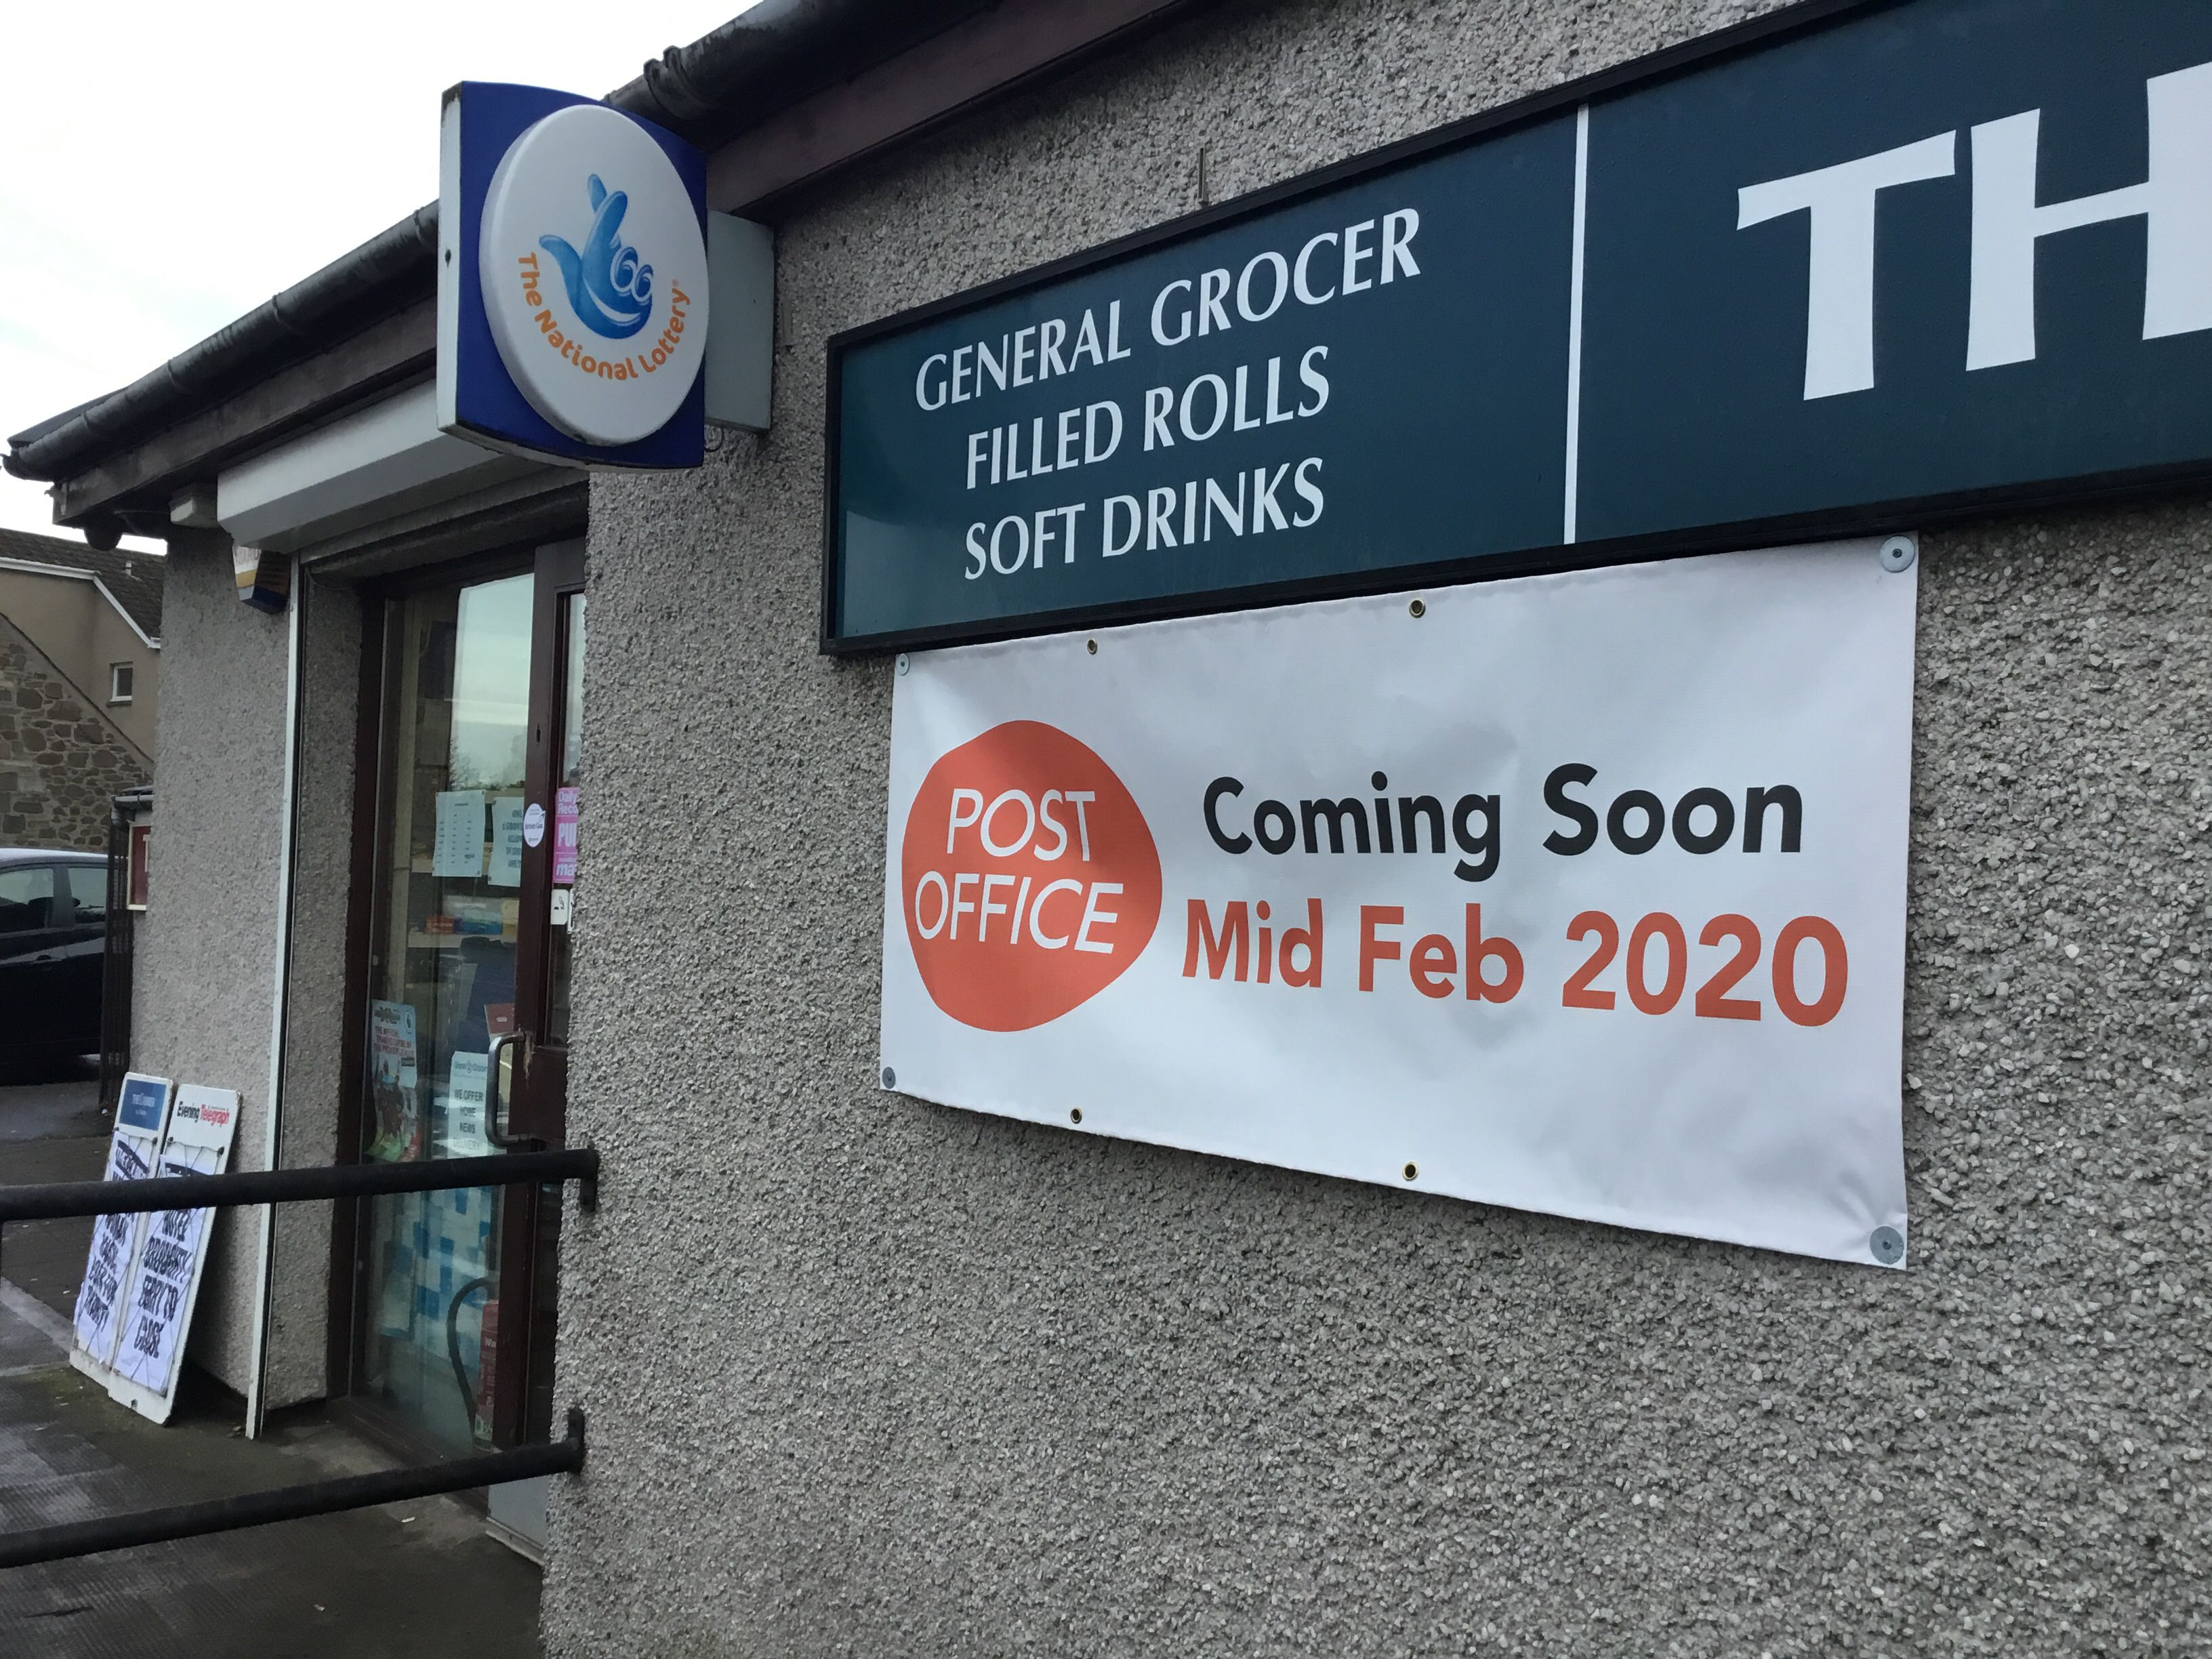 The new post office will be on Balgillo Road.